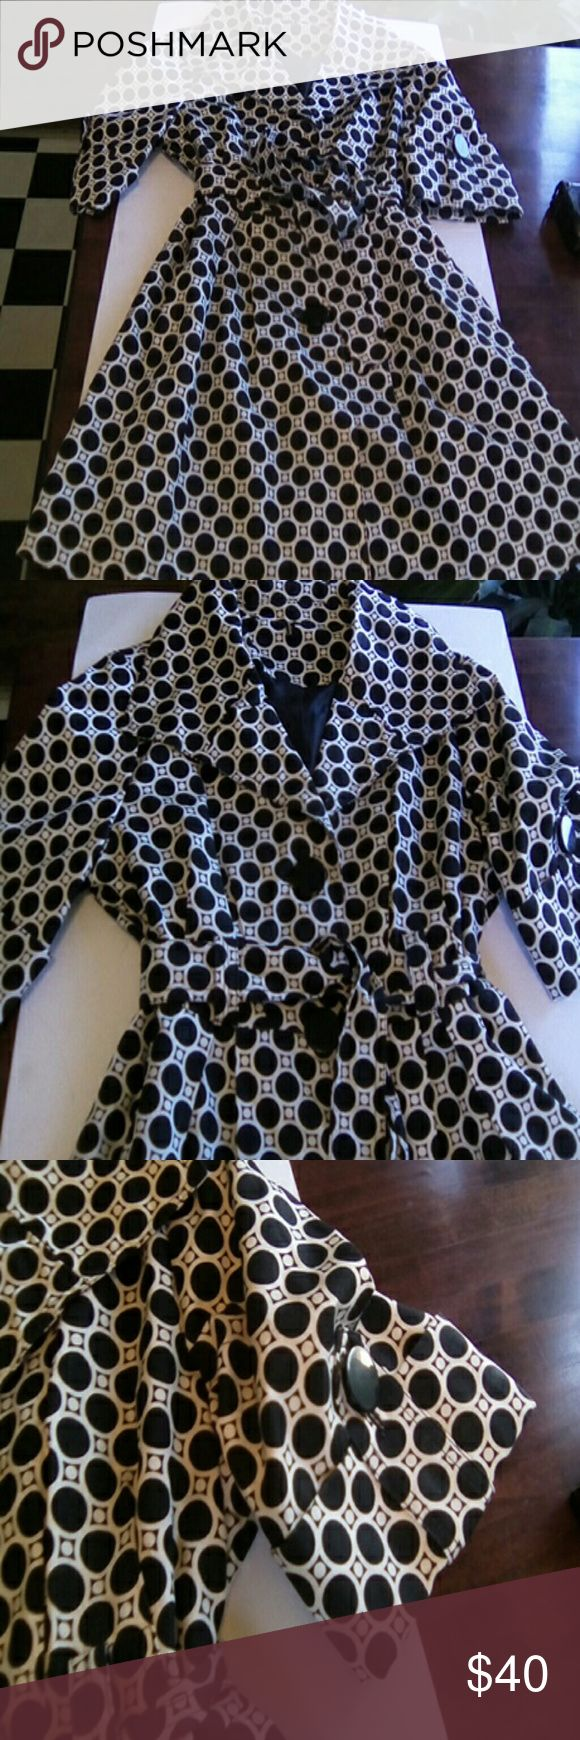 """AMBITION BLACK WHITE FULL COAT DRESS PM EXCELLENT CONDITIONS BUTTON FRONT LARGE BLACK BUTTONS LINED BELTED FULL PLEAT IN BACK LARGE COLLAR HAS THE 60's STYLE 3/4 SLEEVES COTTON BLEND SIZE PM BUST 38"""" WAIST  32"""" LENGTH 30"""" AMBITION Dresses"""